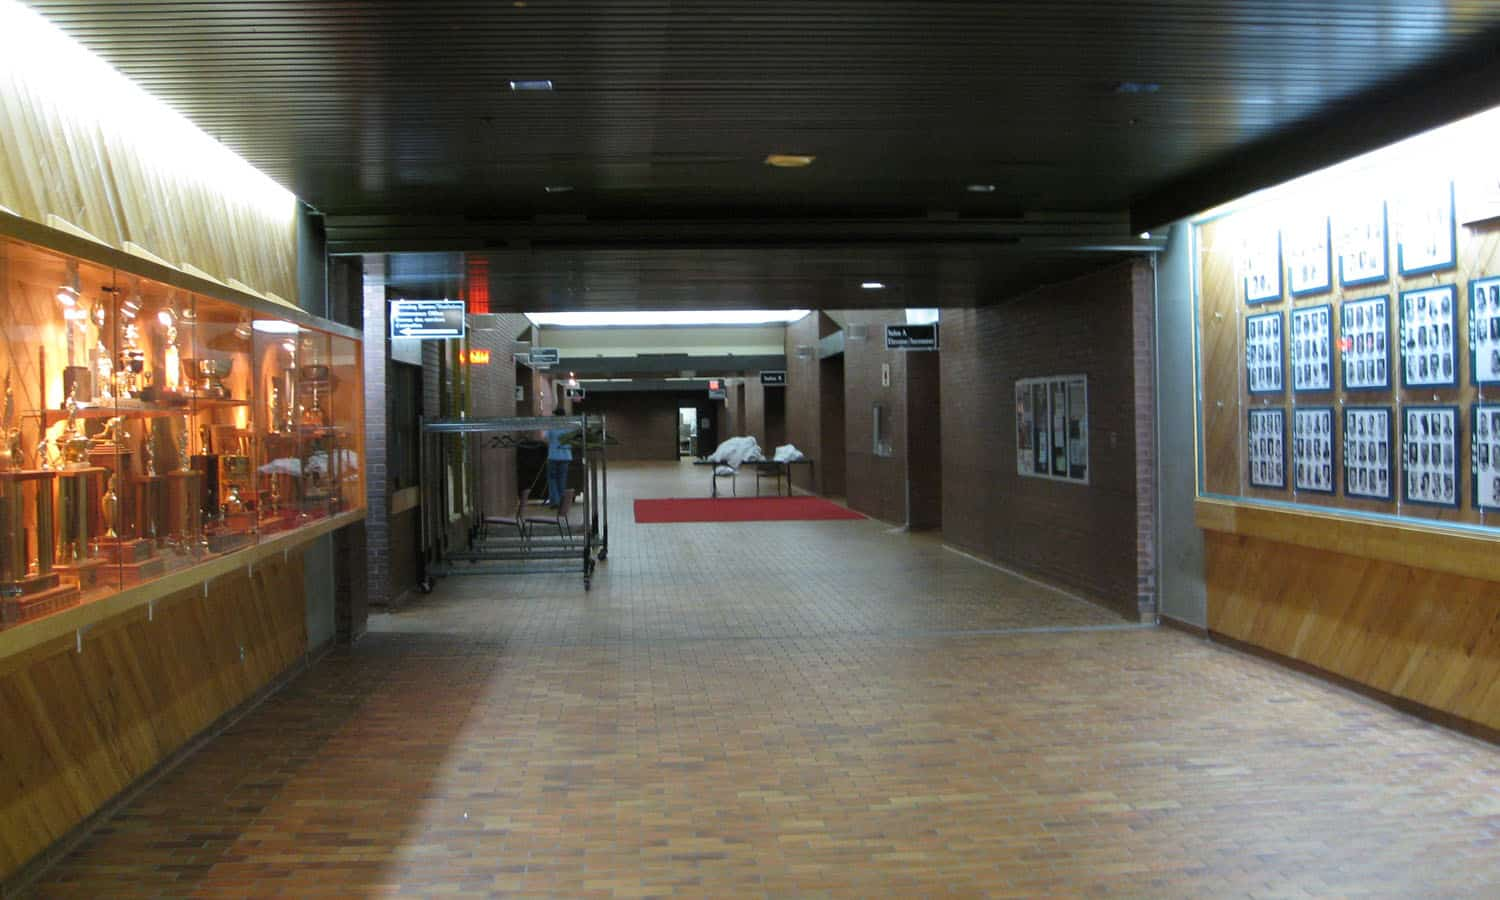 Lower level concourse (typically not used during games)